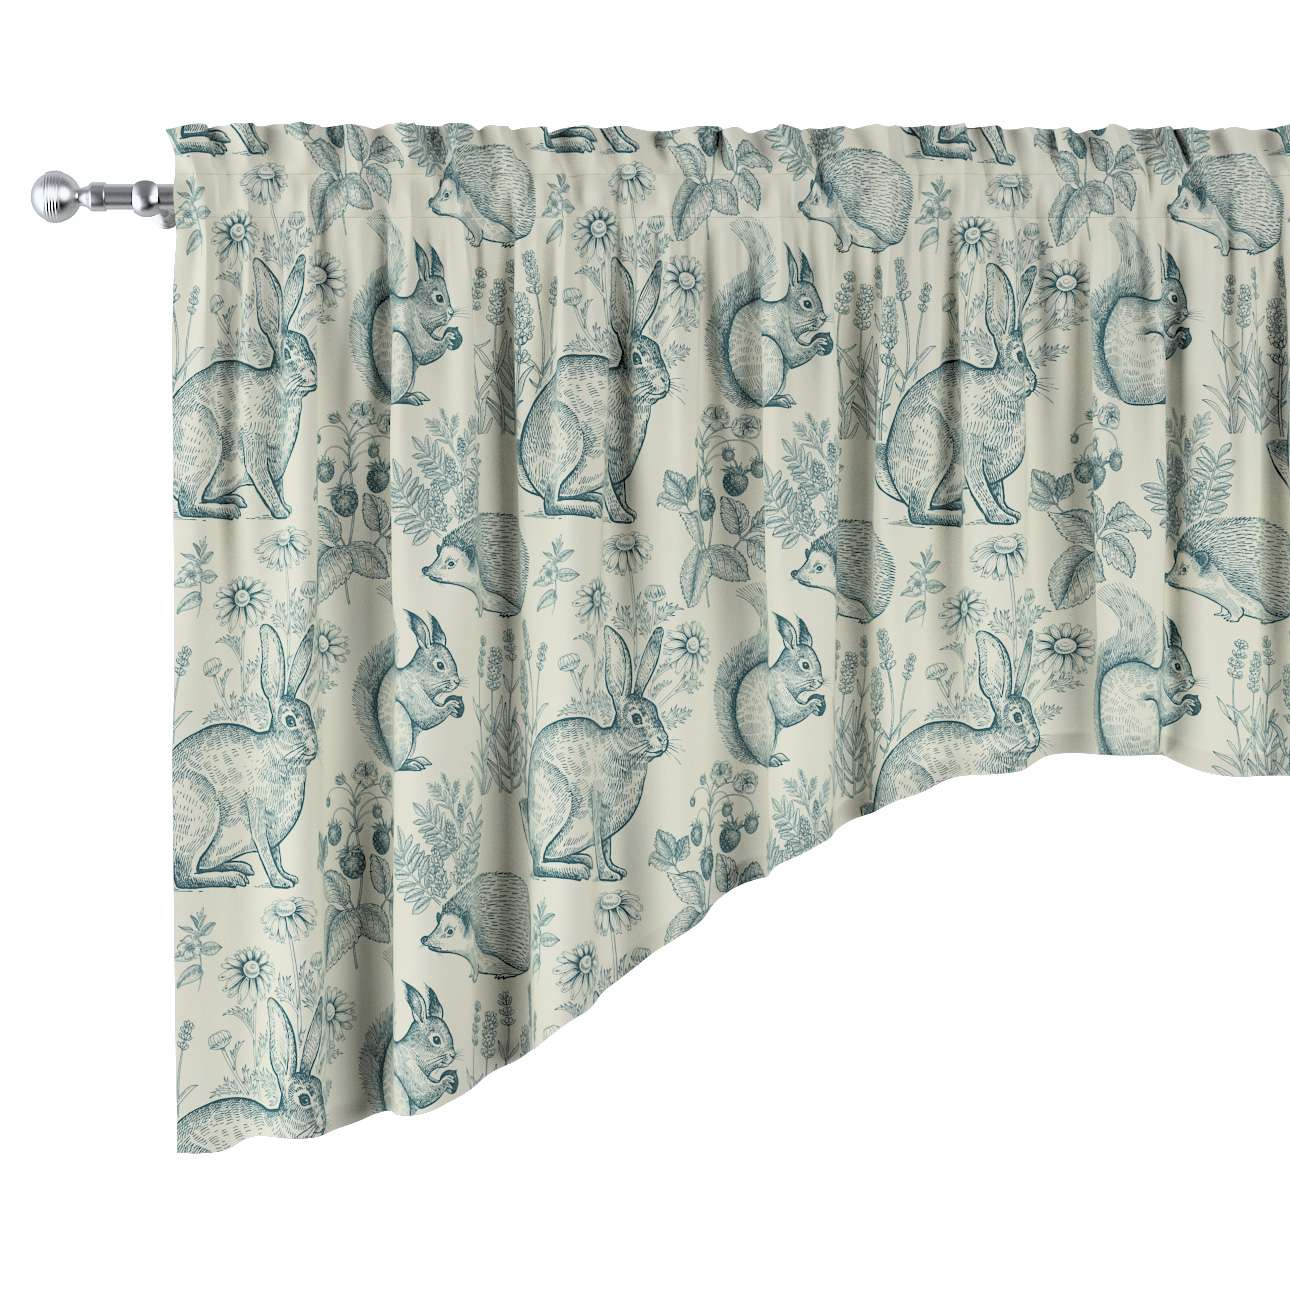 Bow lambrequin in collection Magic Collection, fabric: 500-04